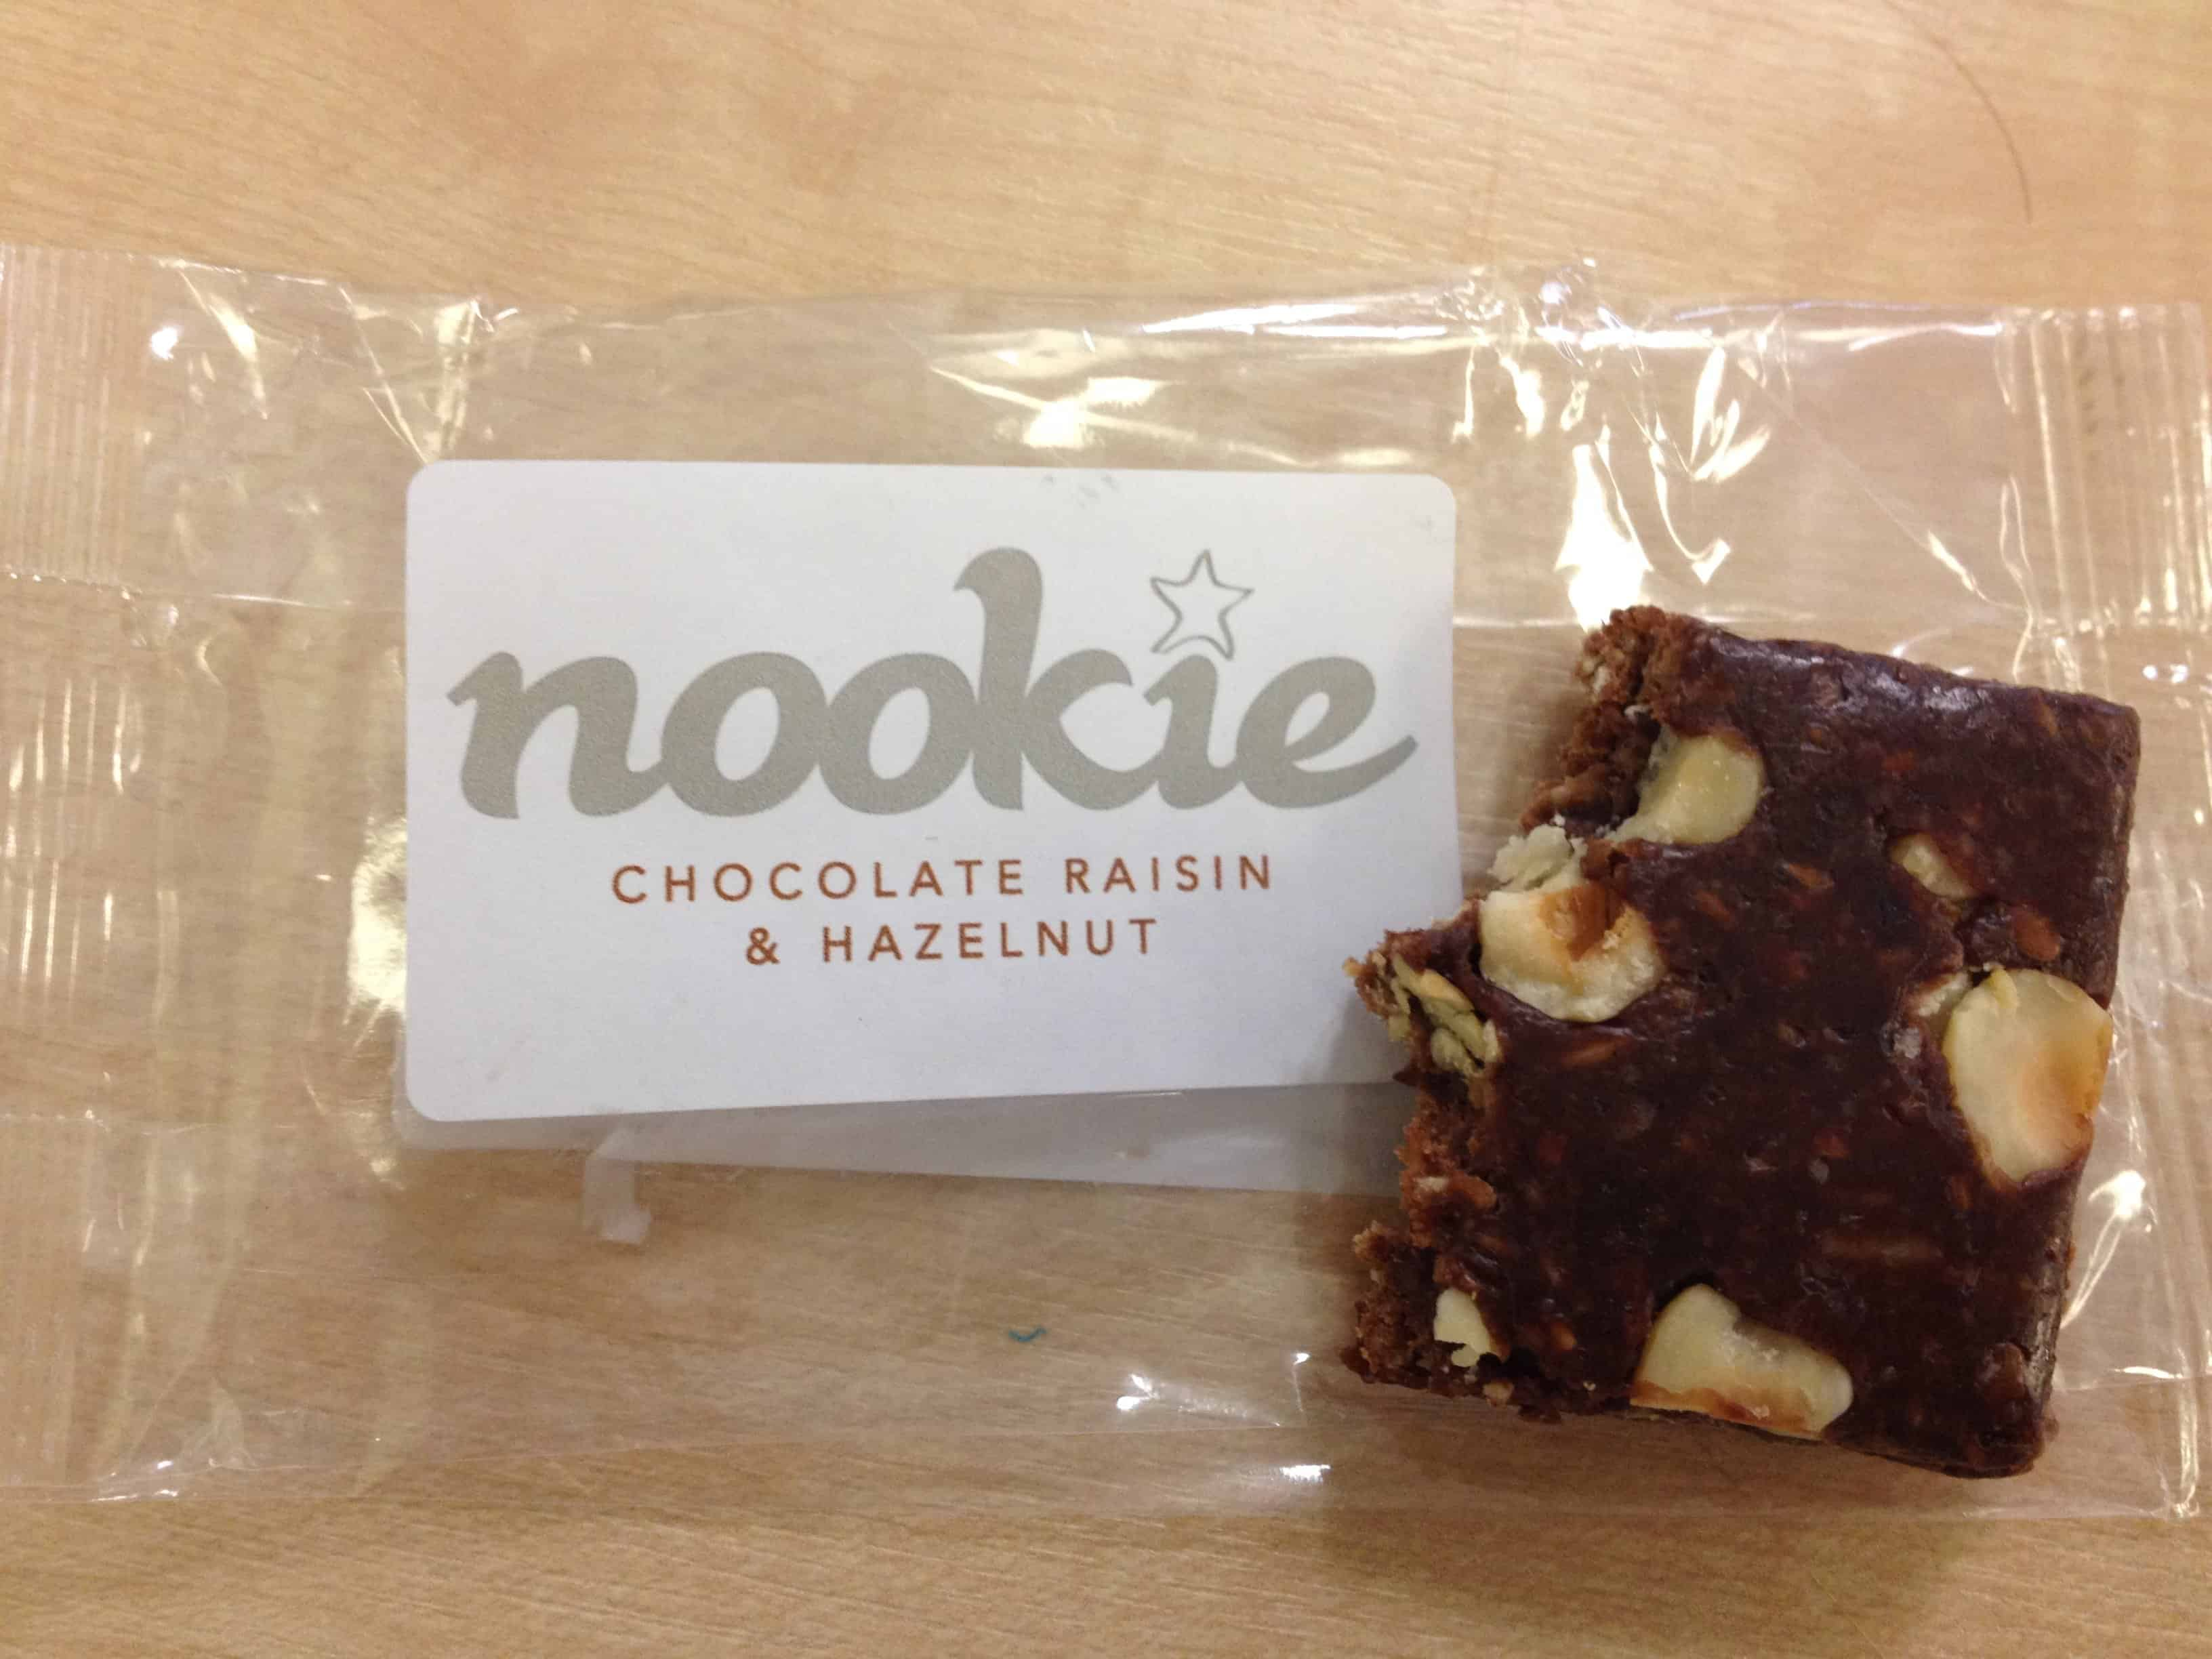 Fancy some nookie!?